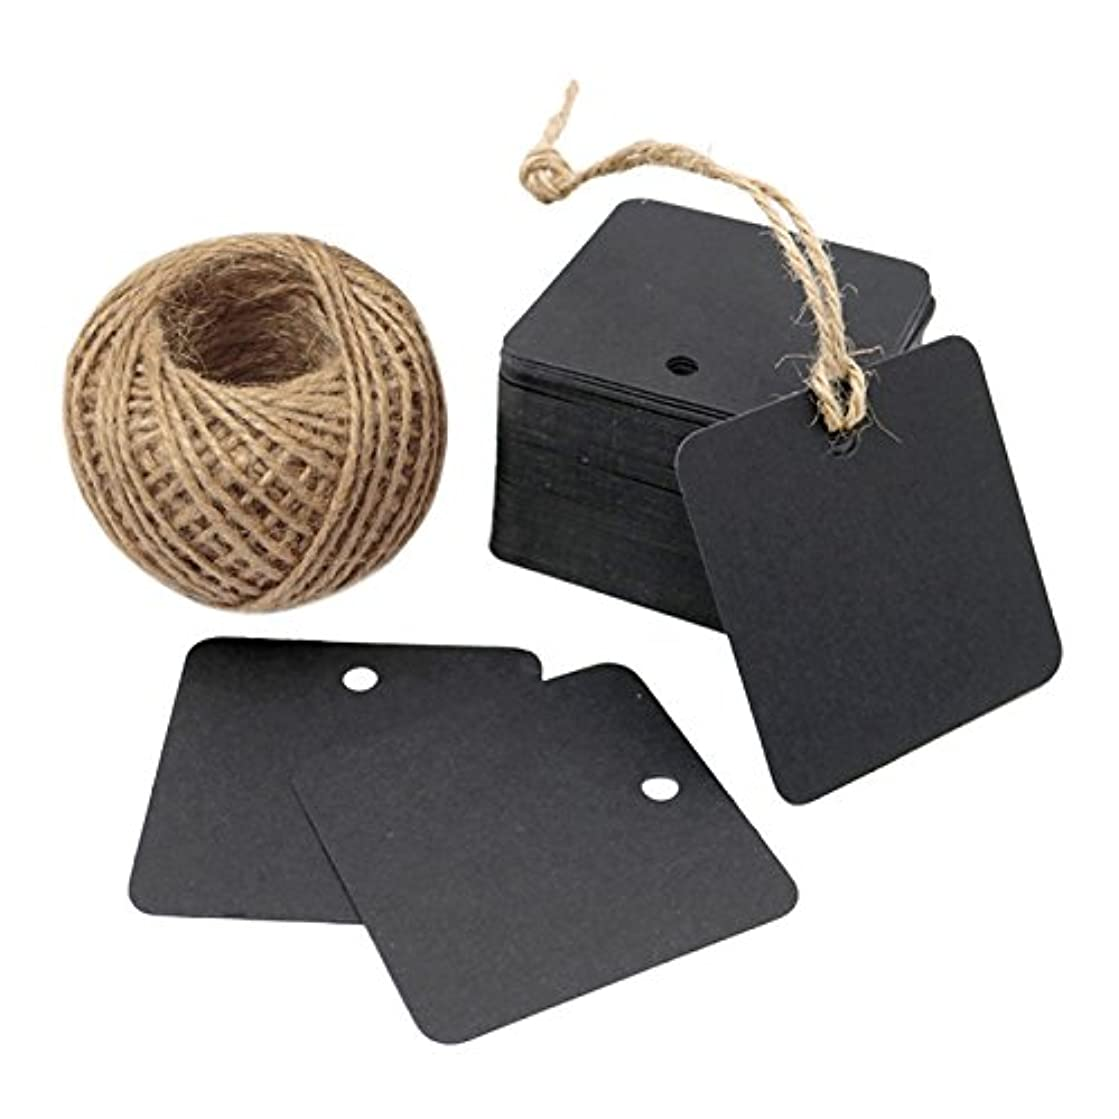 100 Pcs Square Gift Tags with String,Blank Kraft Paper Tags with 100 Feet Jute Twine for Wedding Favor,Christmas (Black)